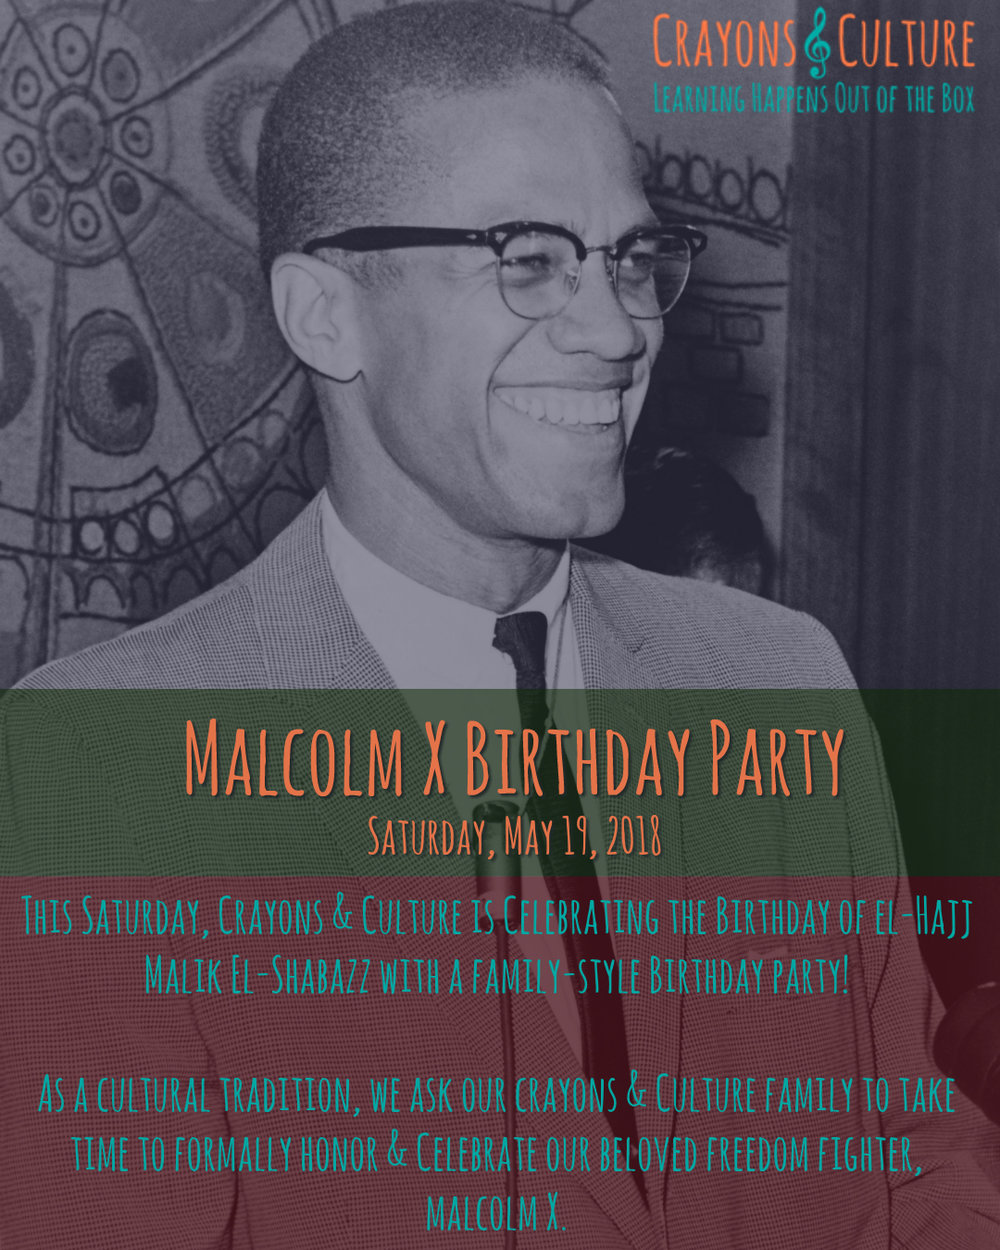 Malcolm X Bday Party.jpg